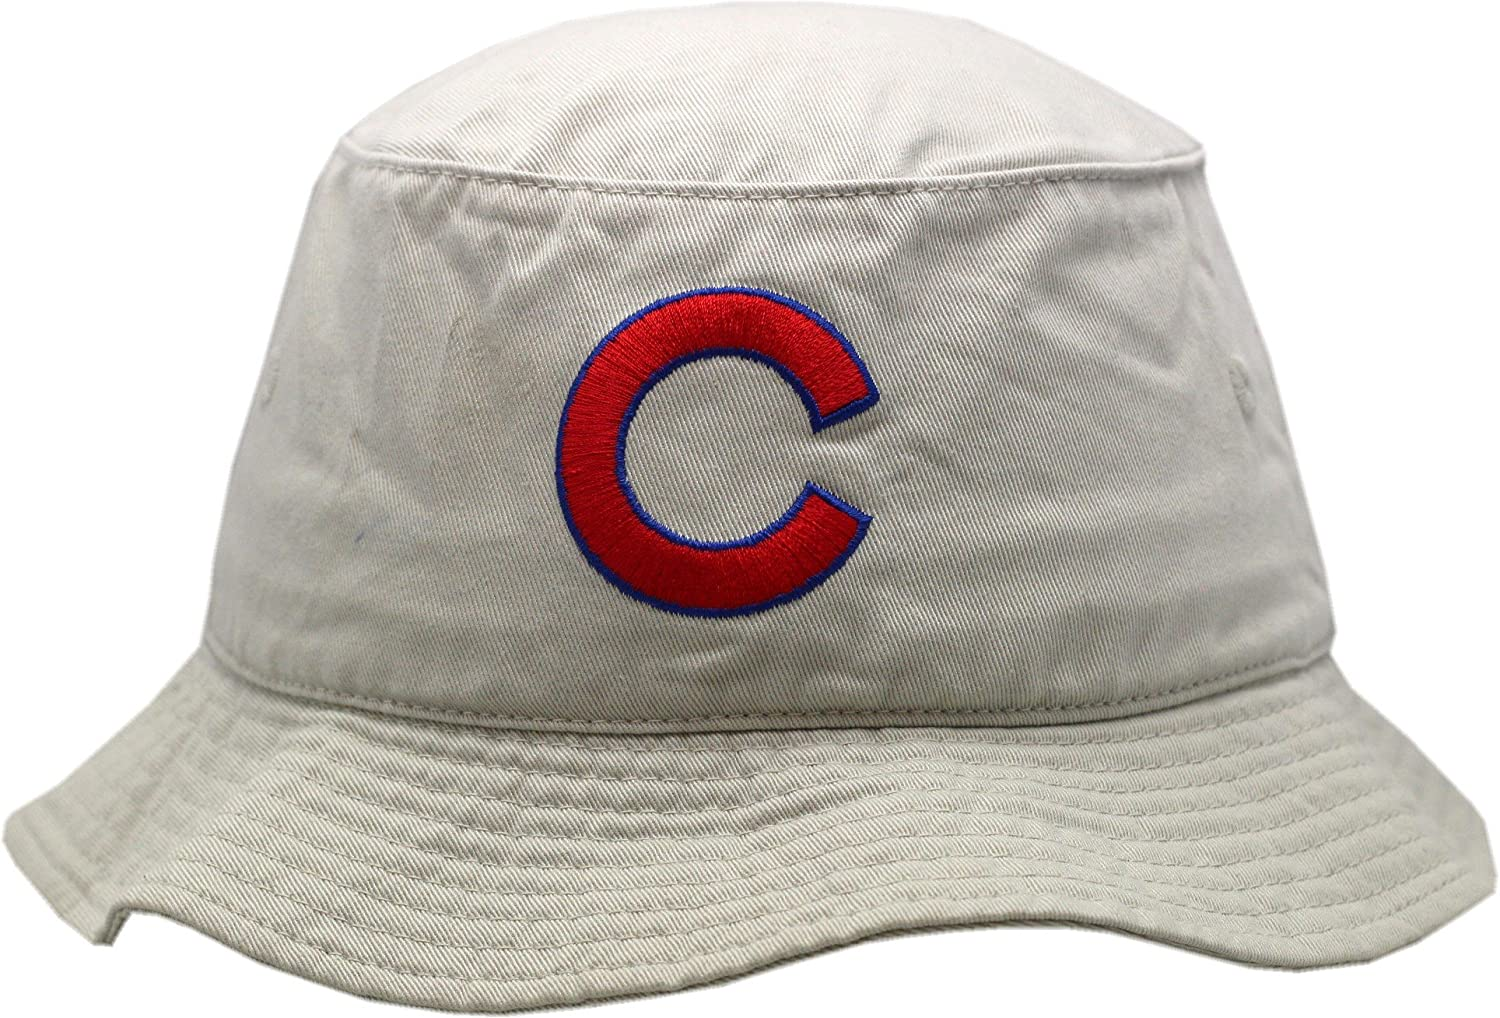 1d4b6500b7b Chicago Cubs Khaki American Needle Fitted Bucket Hat-5527-5528 (S-M ...